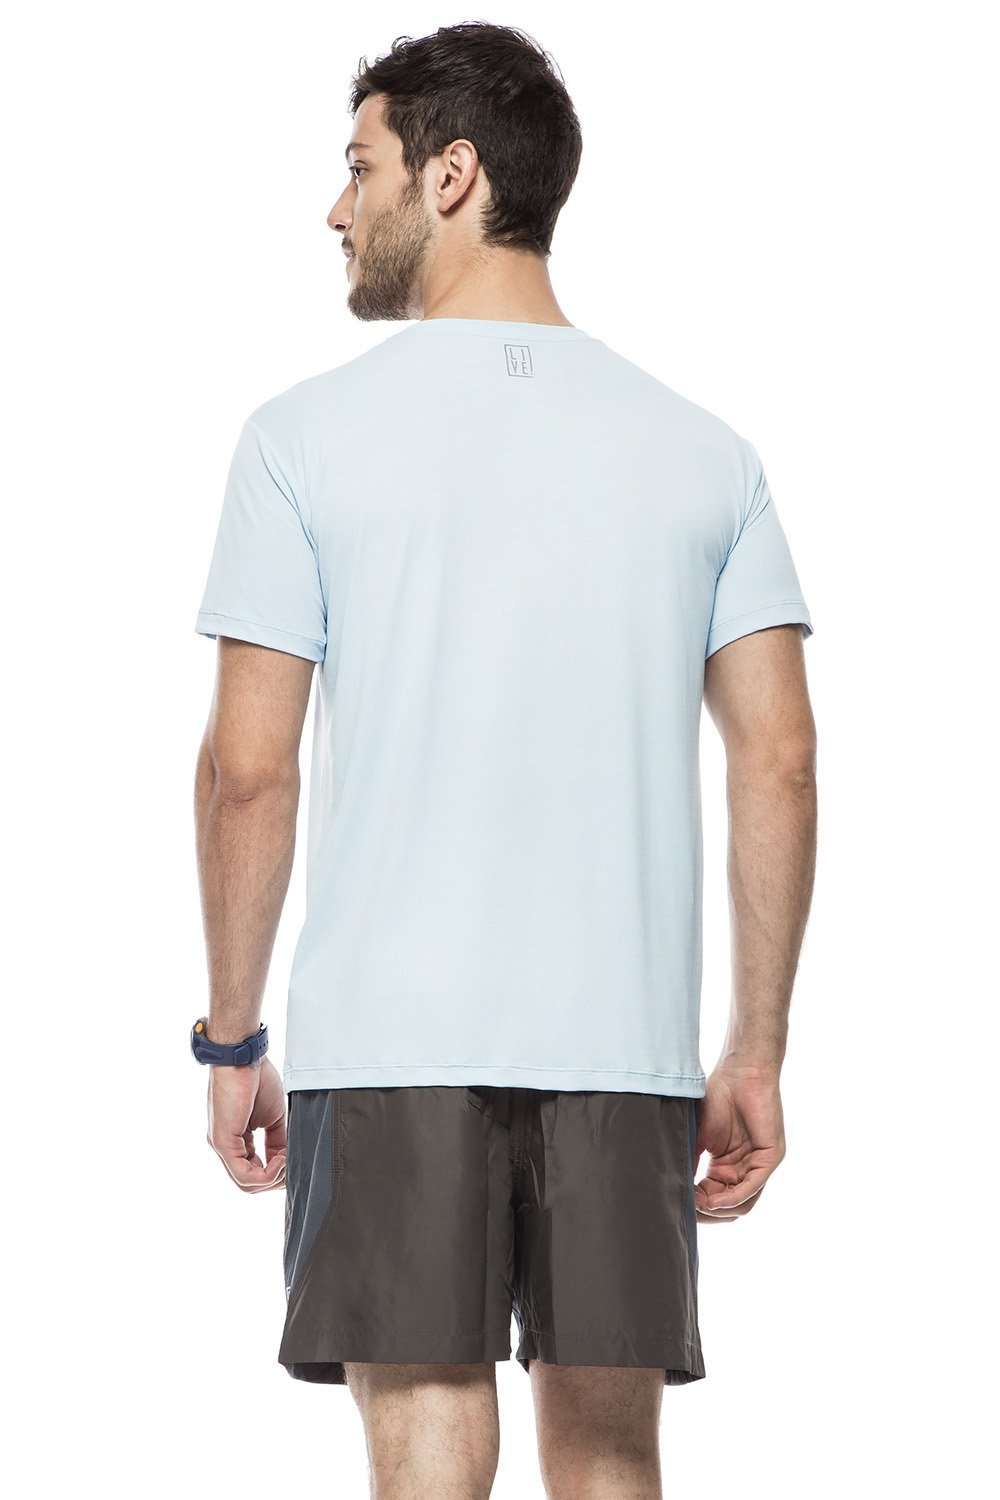 All-Day Comfort T-Shirt 2